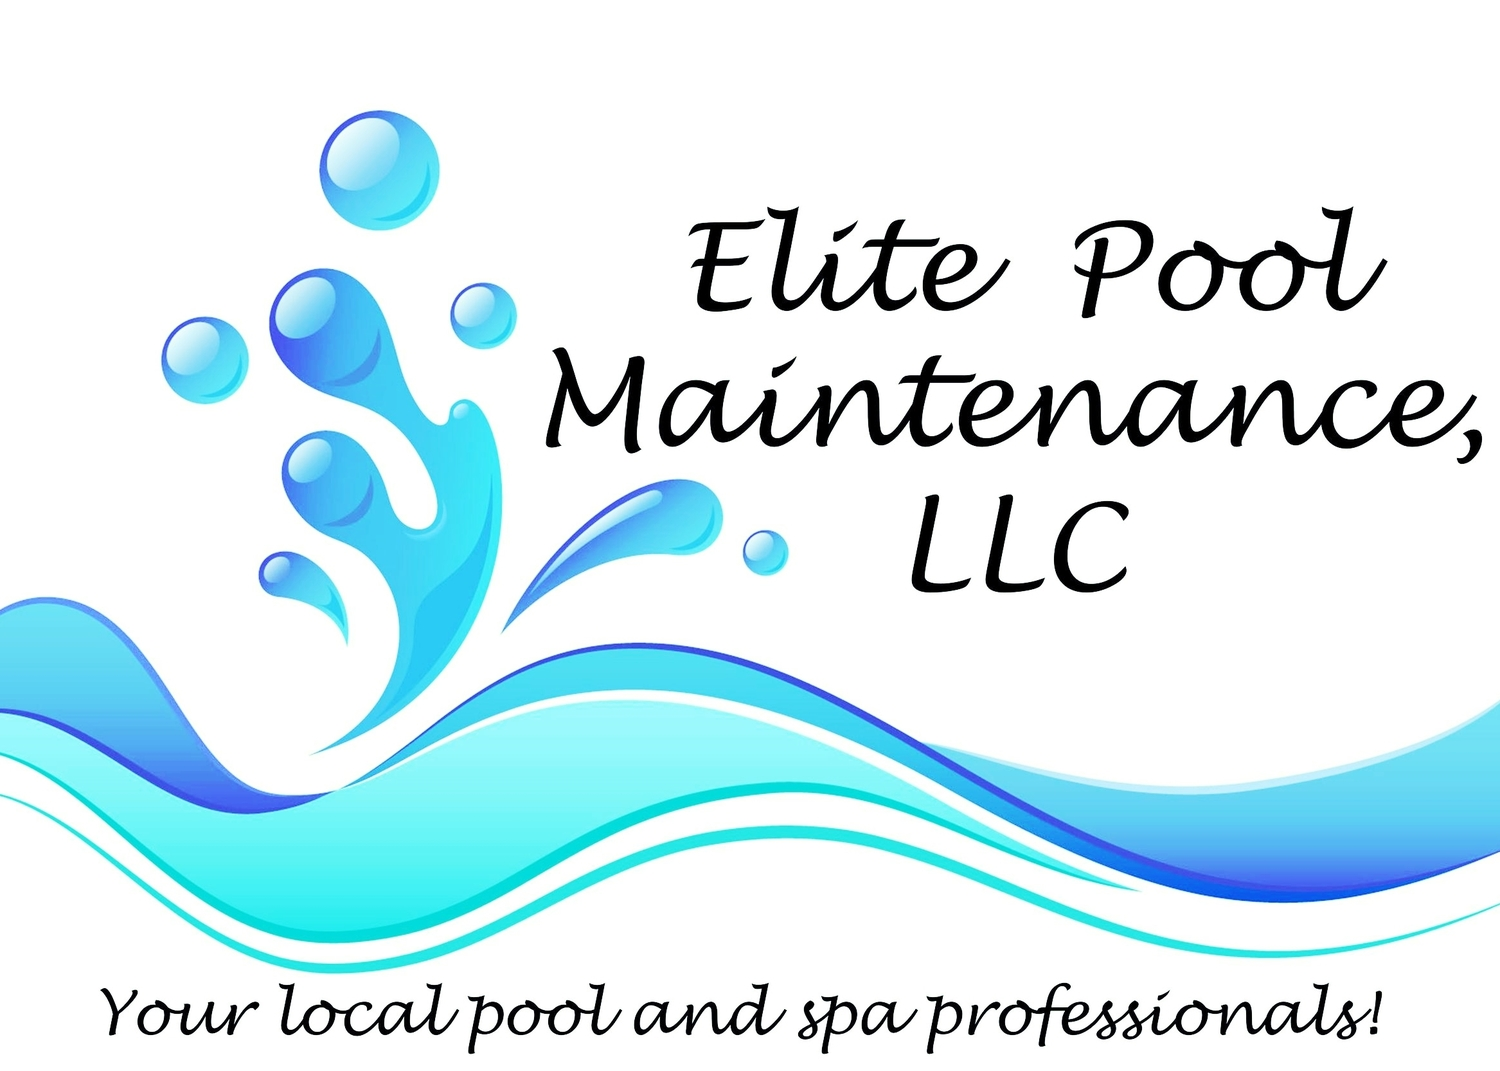 Elite Pool Maintenance